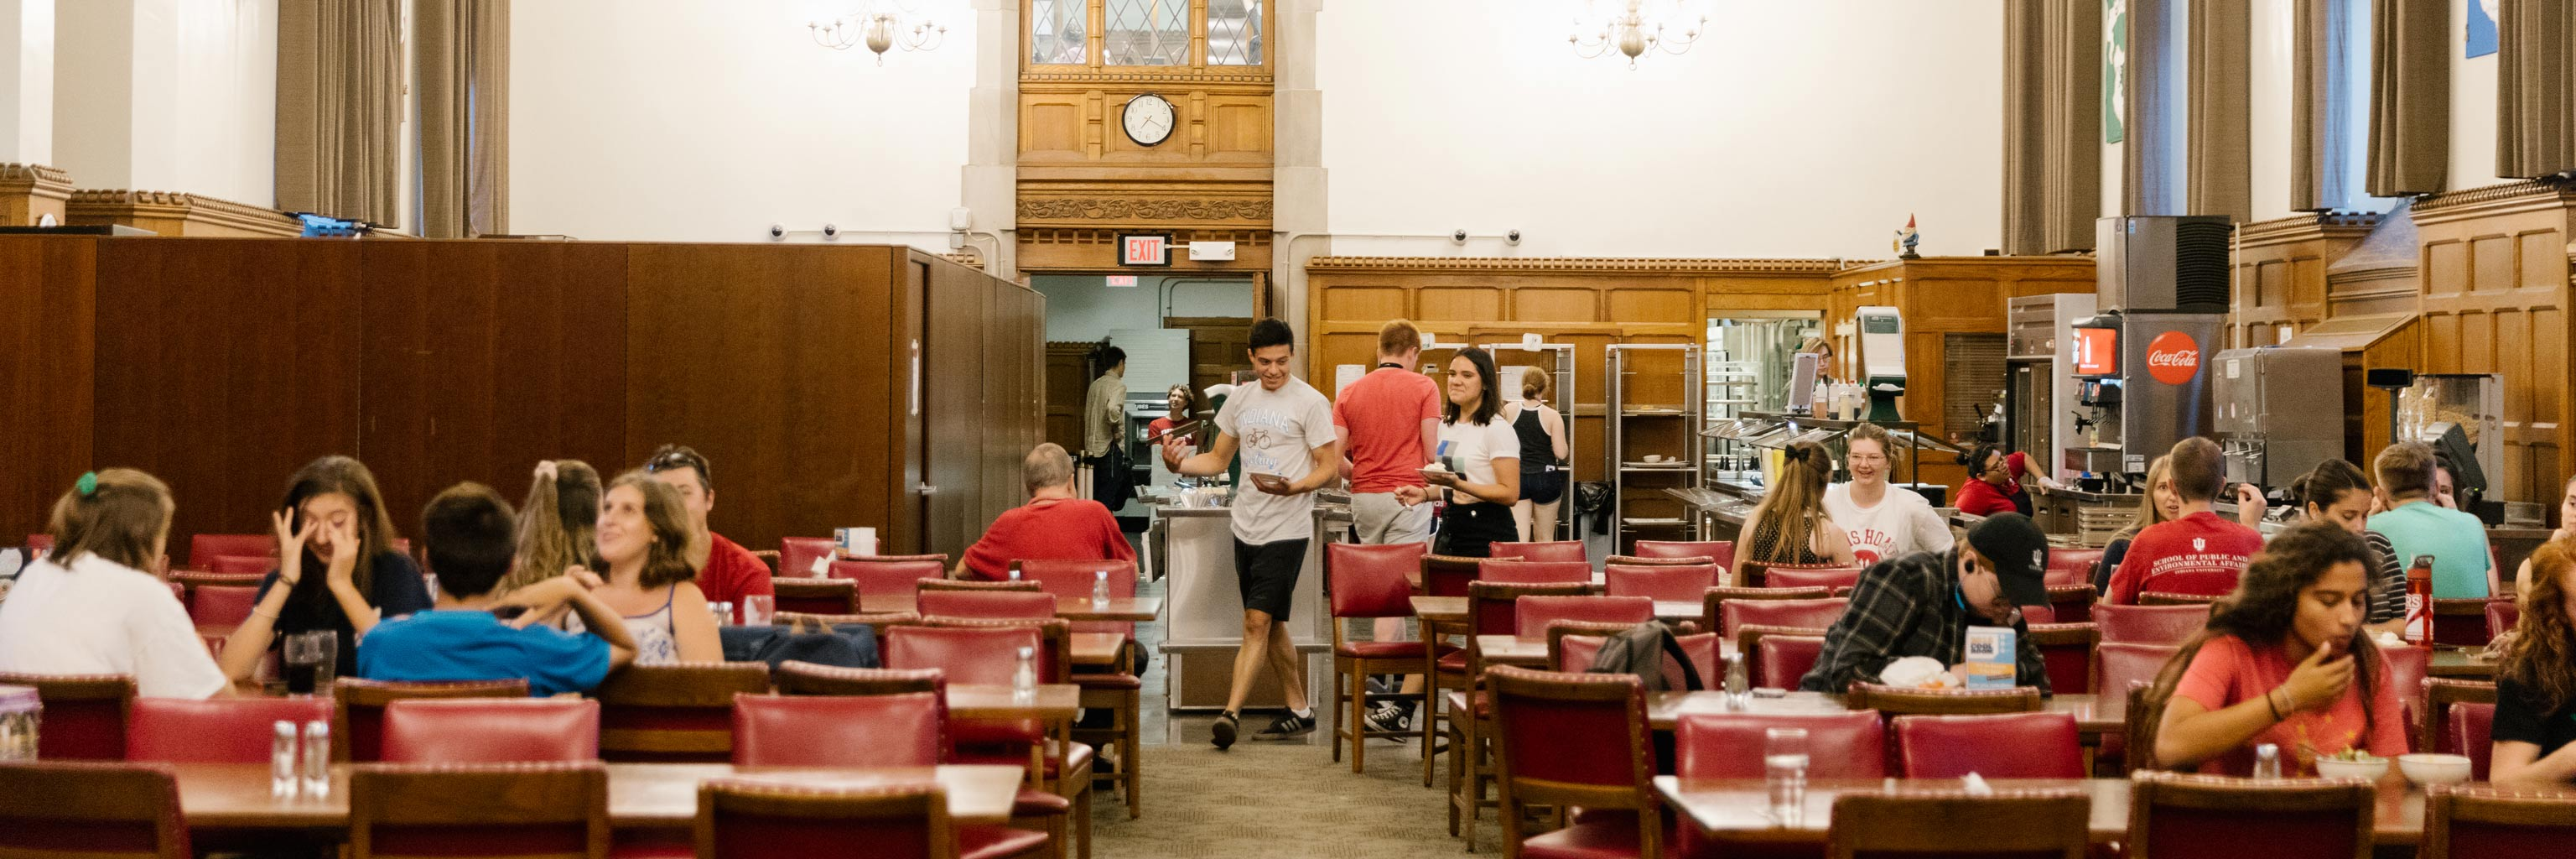 Students eating in the Collins Center dining hall